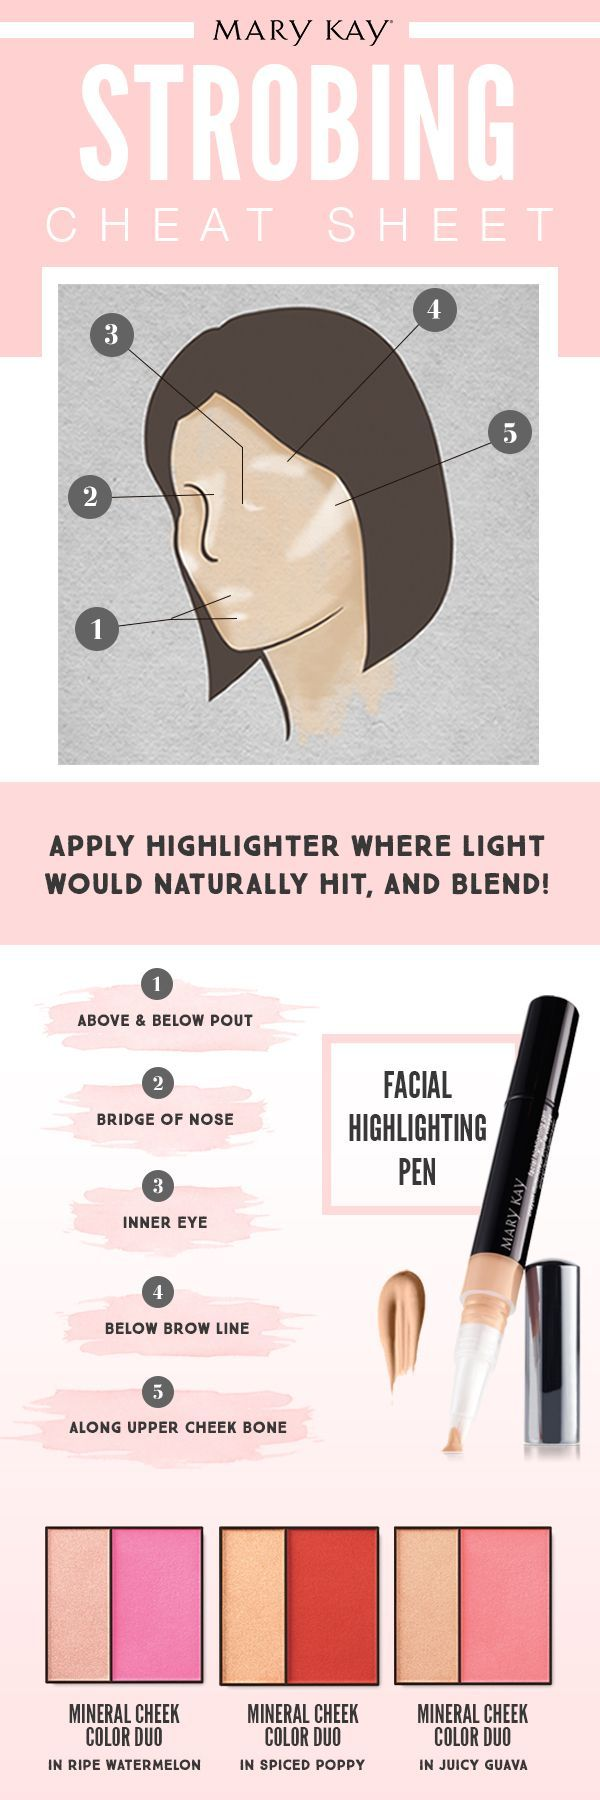 Goodbye contouring, hello strobing! Here's all you need to know about the latest makeup trend that focuses on highlighting where light naturally touches your face! | Mary Kay  http://www.facebook.com/lisamkstyle